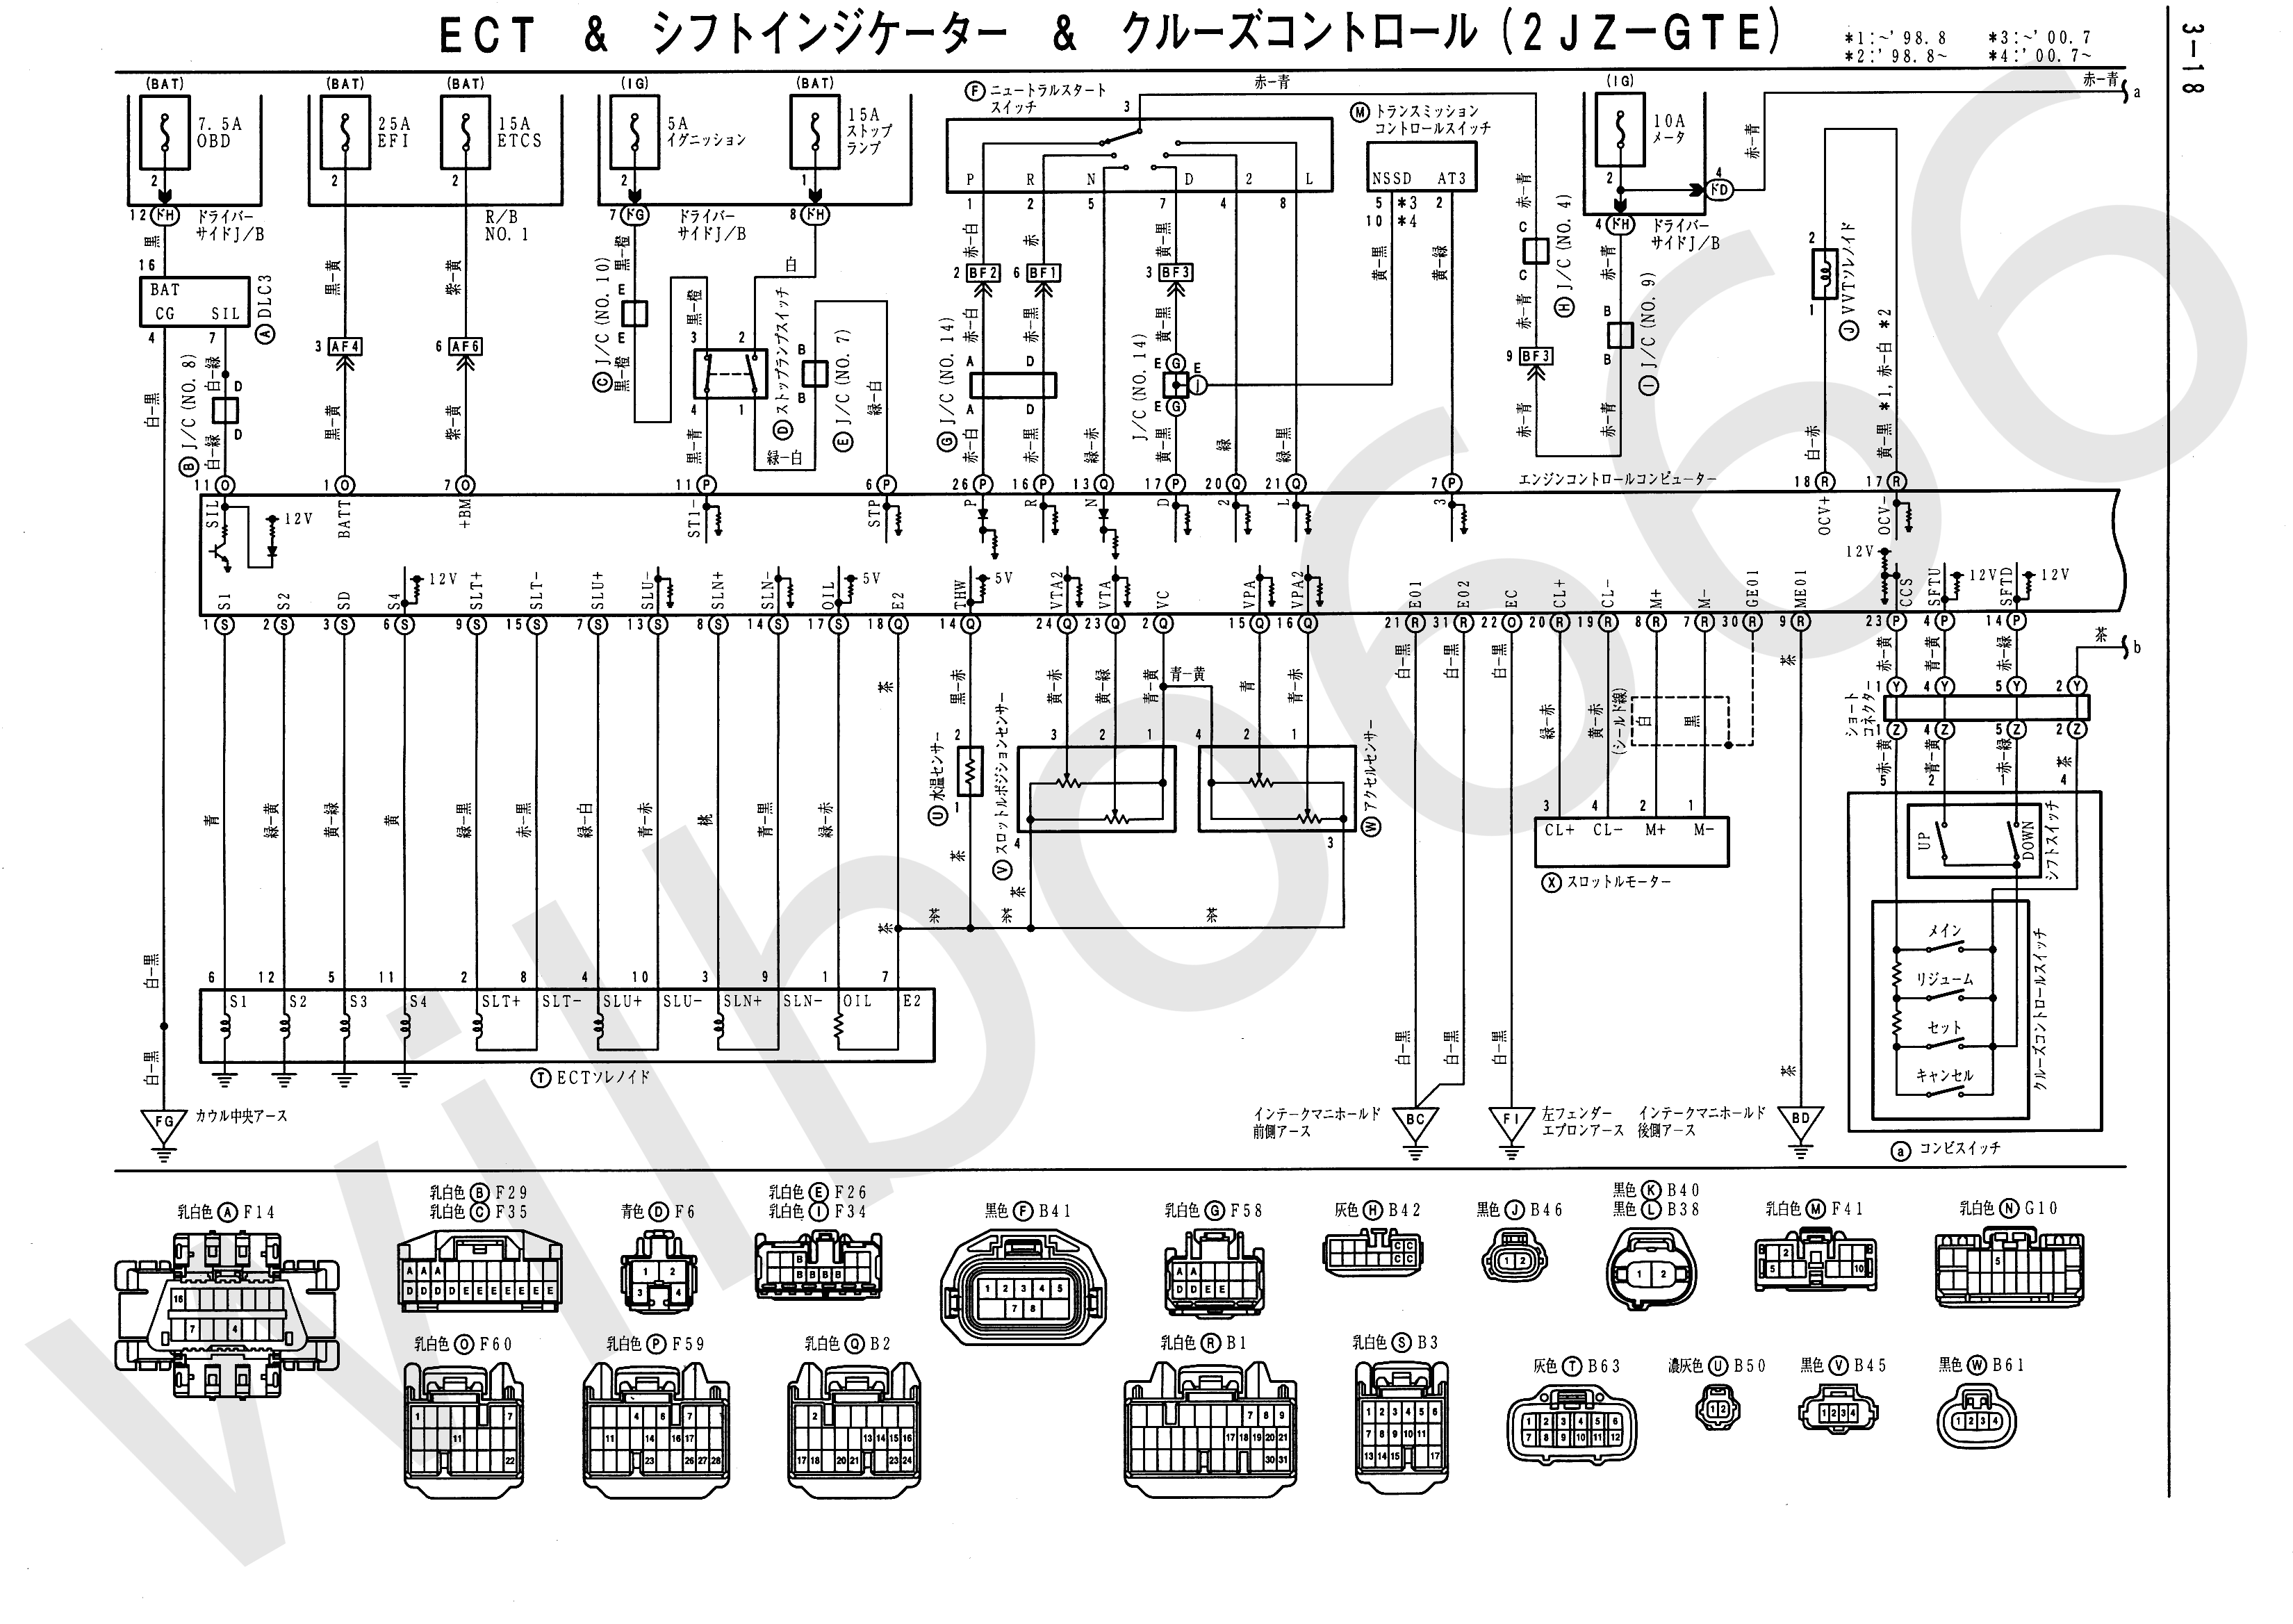 JZS161 Electrical Wiring Diagram 6748505 3 18 2jz wiring diagram wiring diagram ground symbol \u2022 wiring diagrams system sensor 2151 wiring diagram at n-0.co